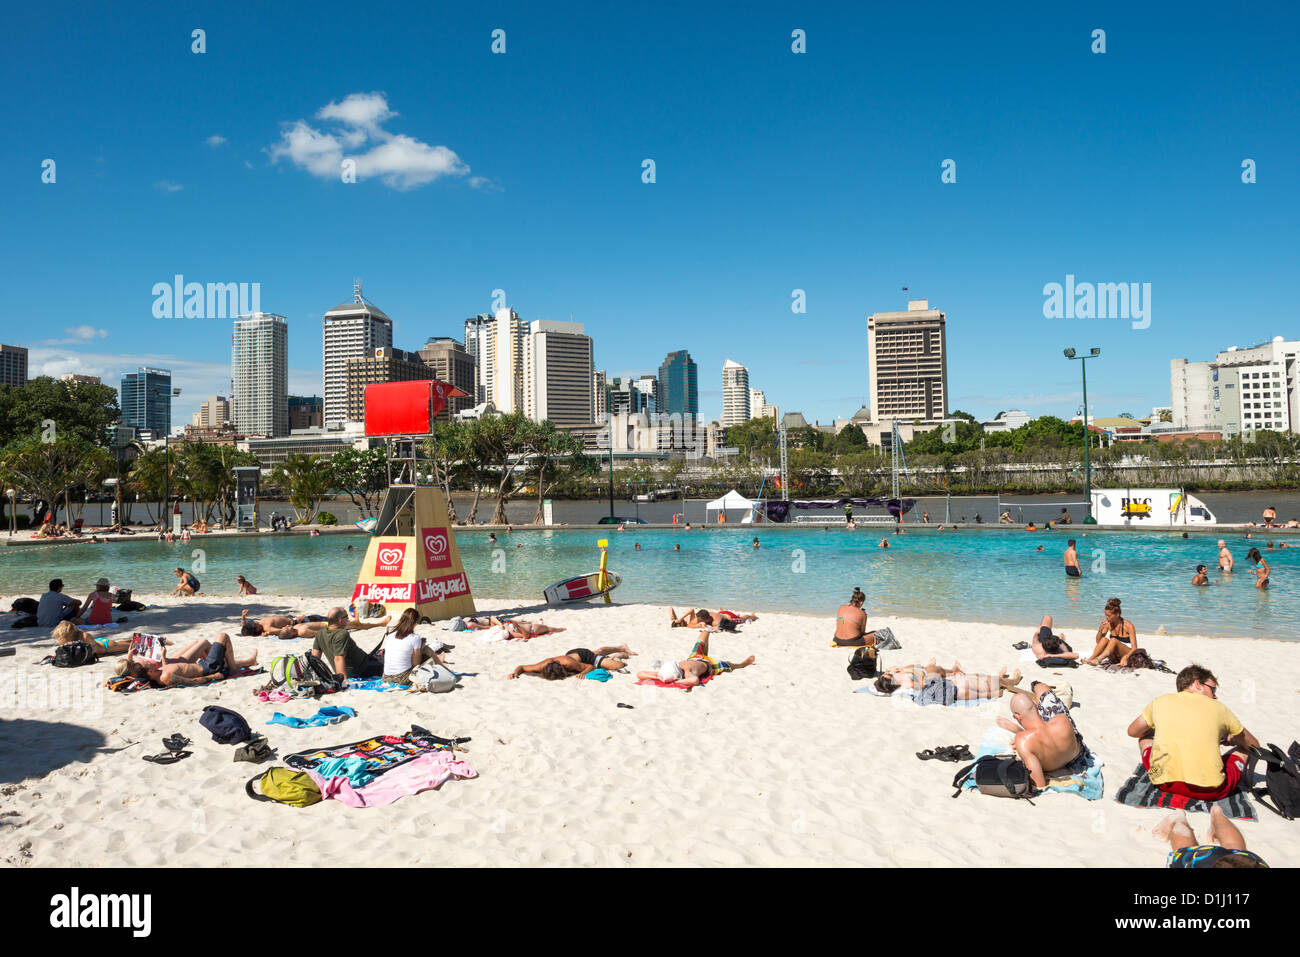 BRISBANE, Australia - The artificial beach at South Bank across the Brisbane River from the CBD of Brisbane, the - Stock Image